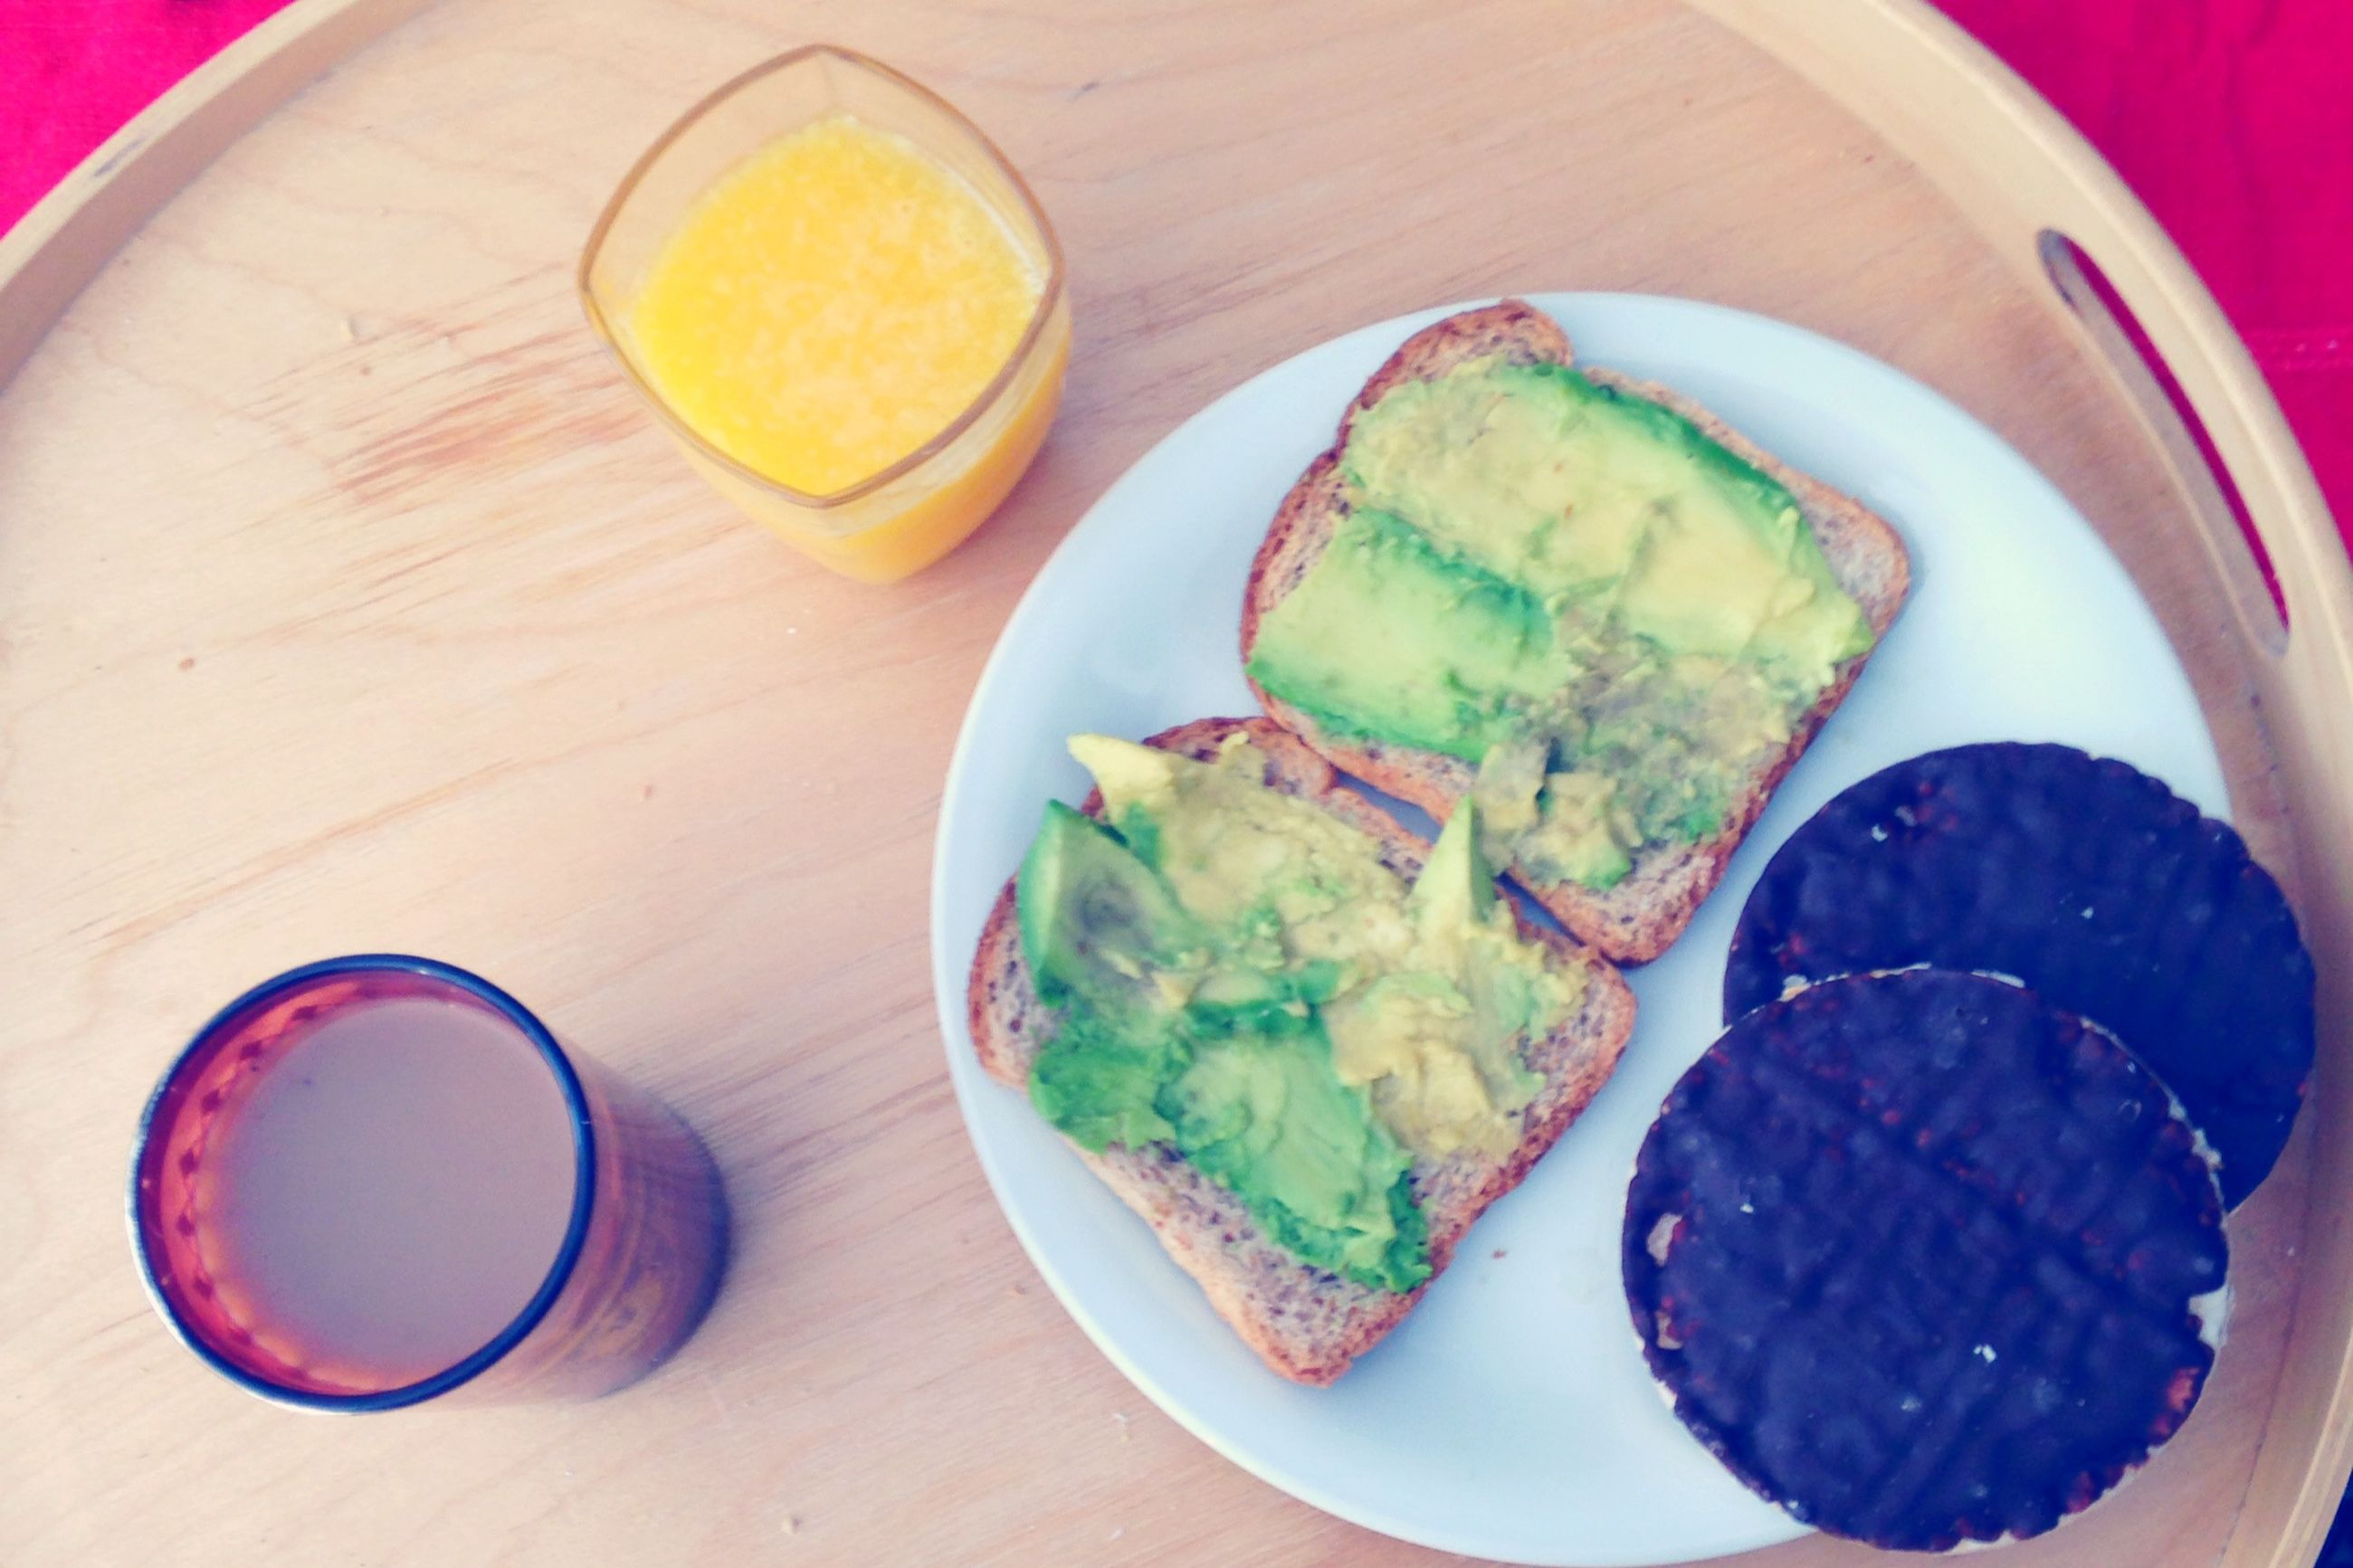 food and drink, food, freshness, indoors, table, ready-to-eat, plate, still life, healthy eating, high angle view, bowl, serving size, directly above, slice, indulgence, breakfast, drink, meal, refreshment, close-up